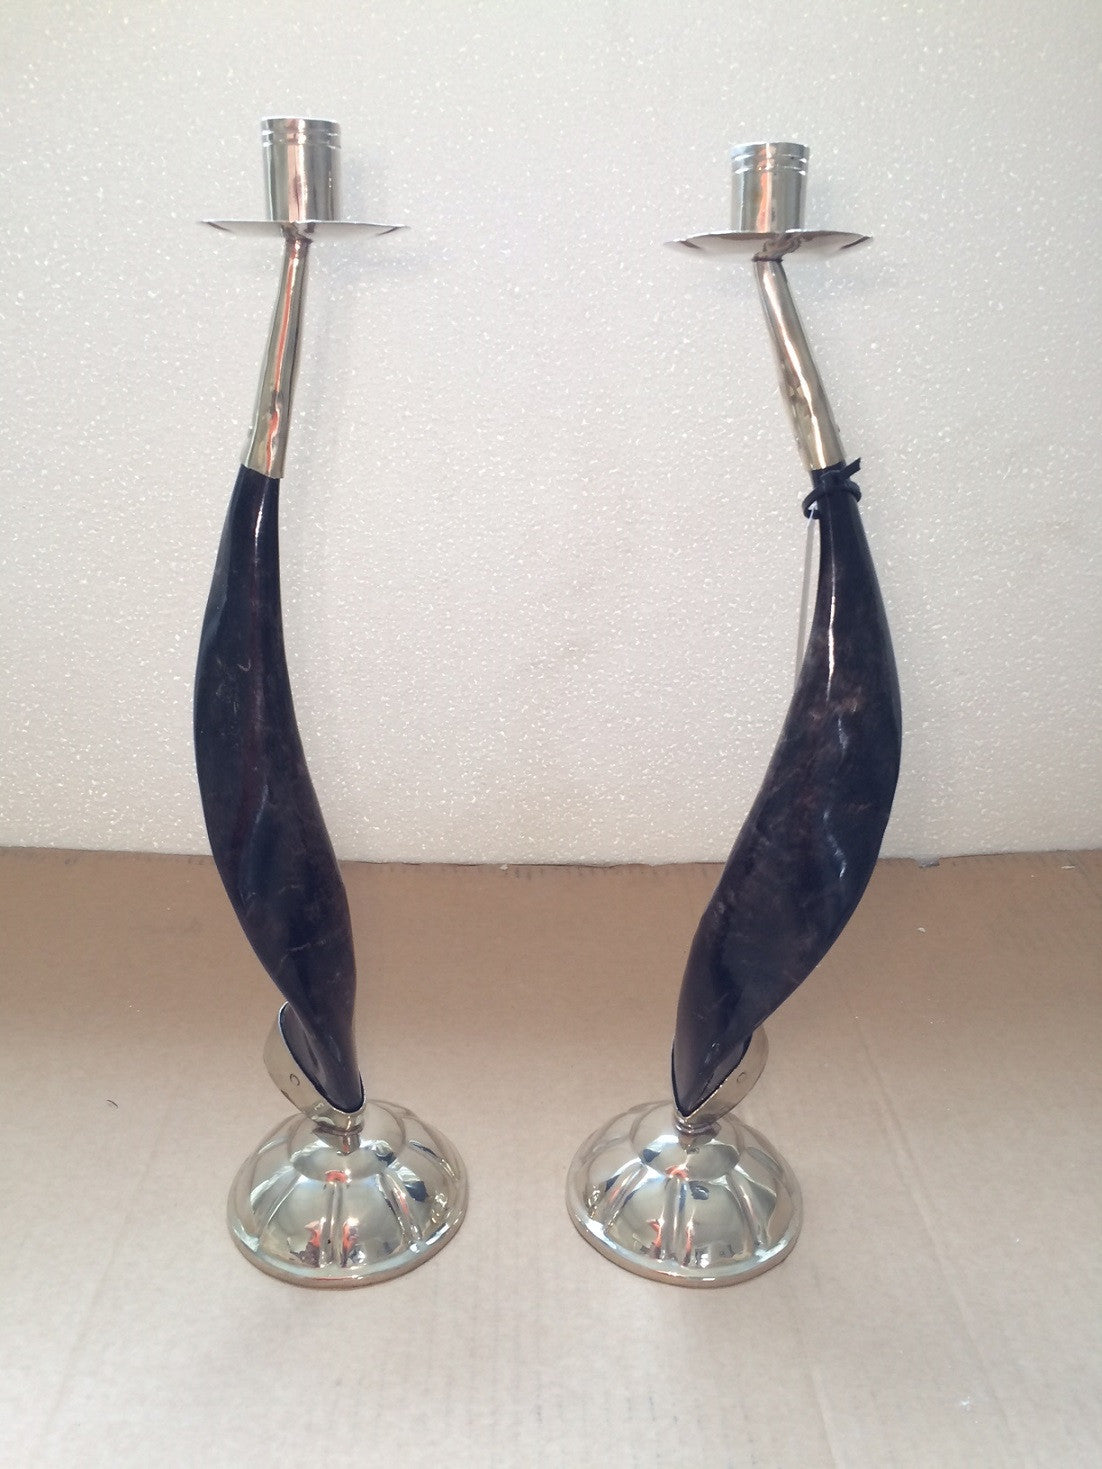 Large Horn and Silver Candlestick Holders (set of 2)